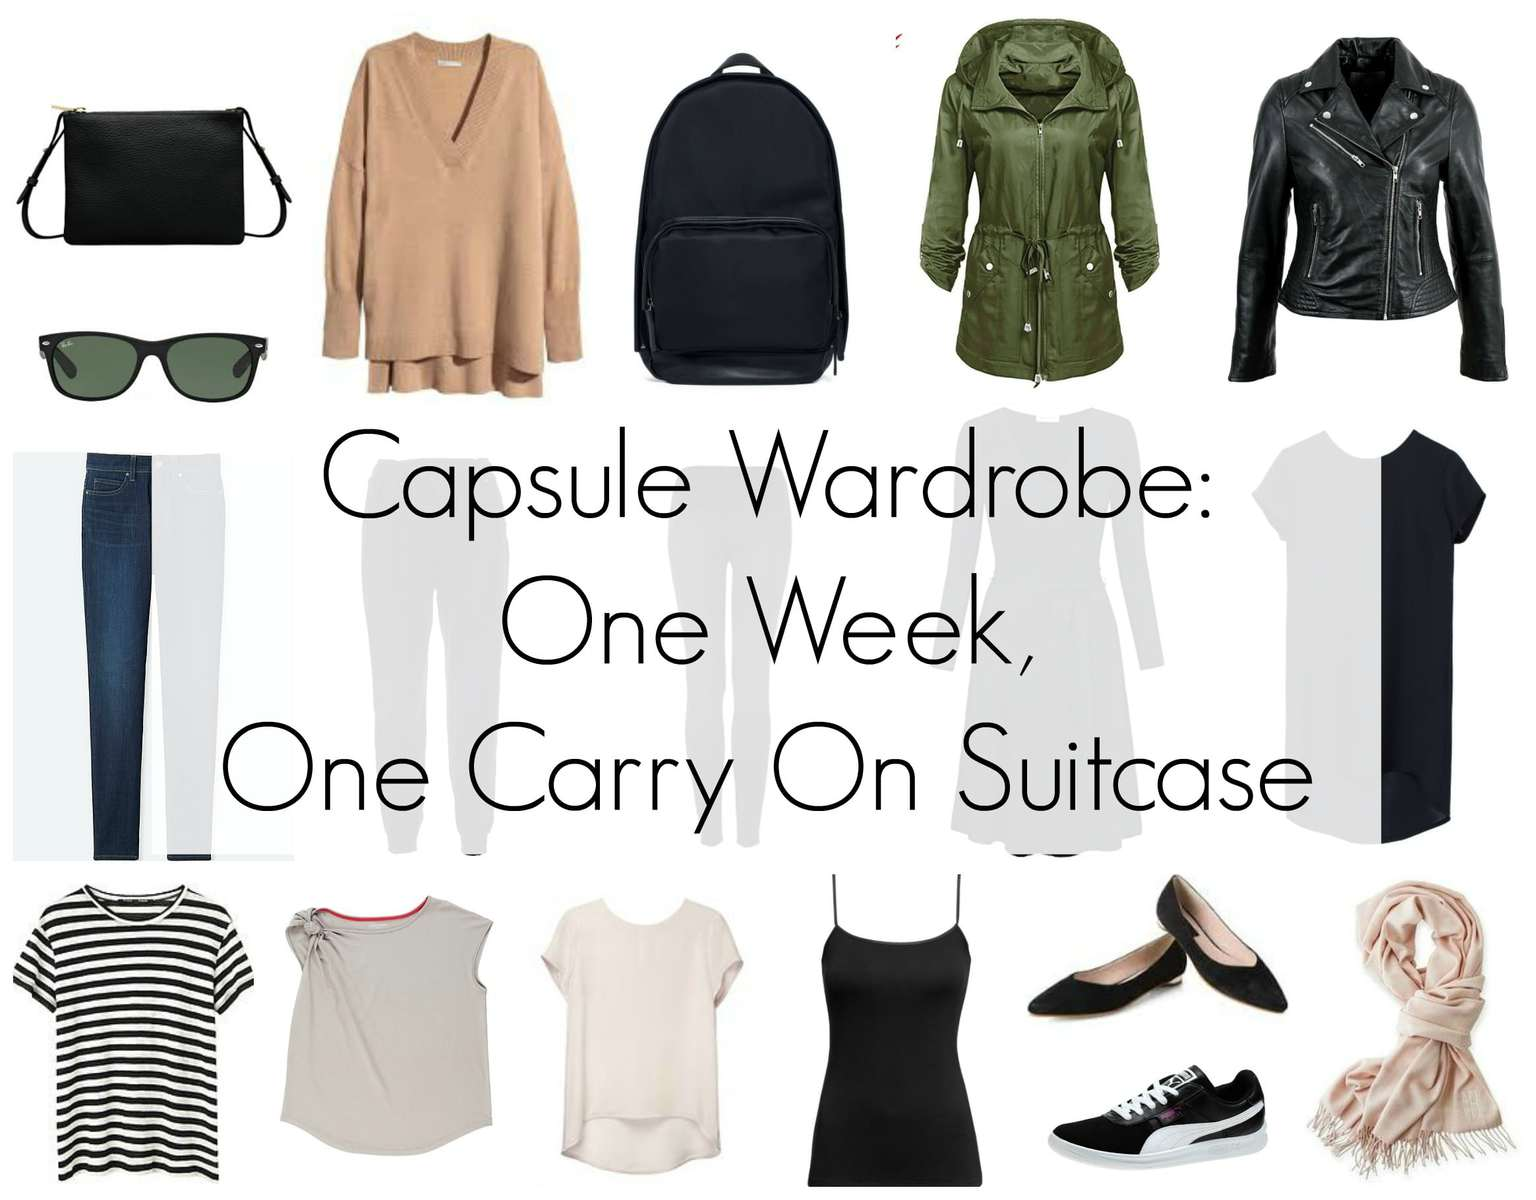 Capsule Wardrobe One Week One Carry On Suitcase